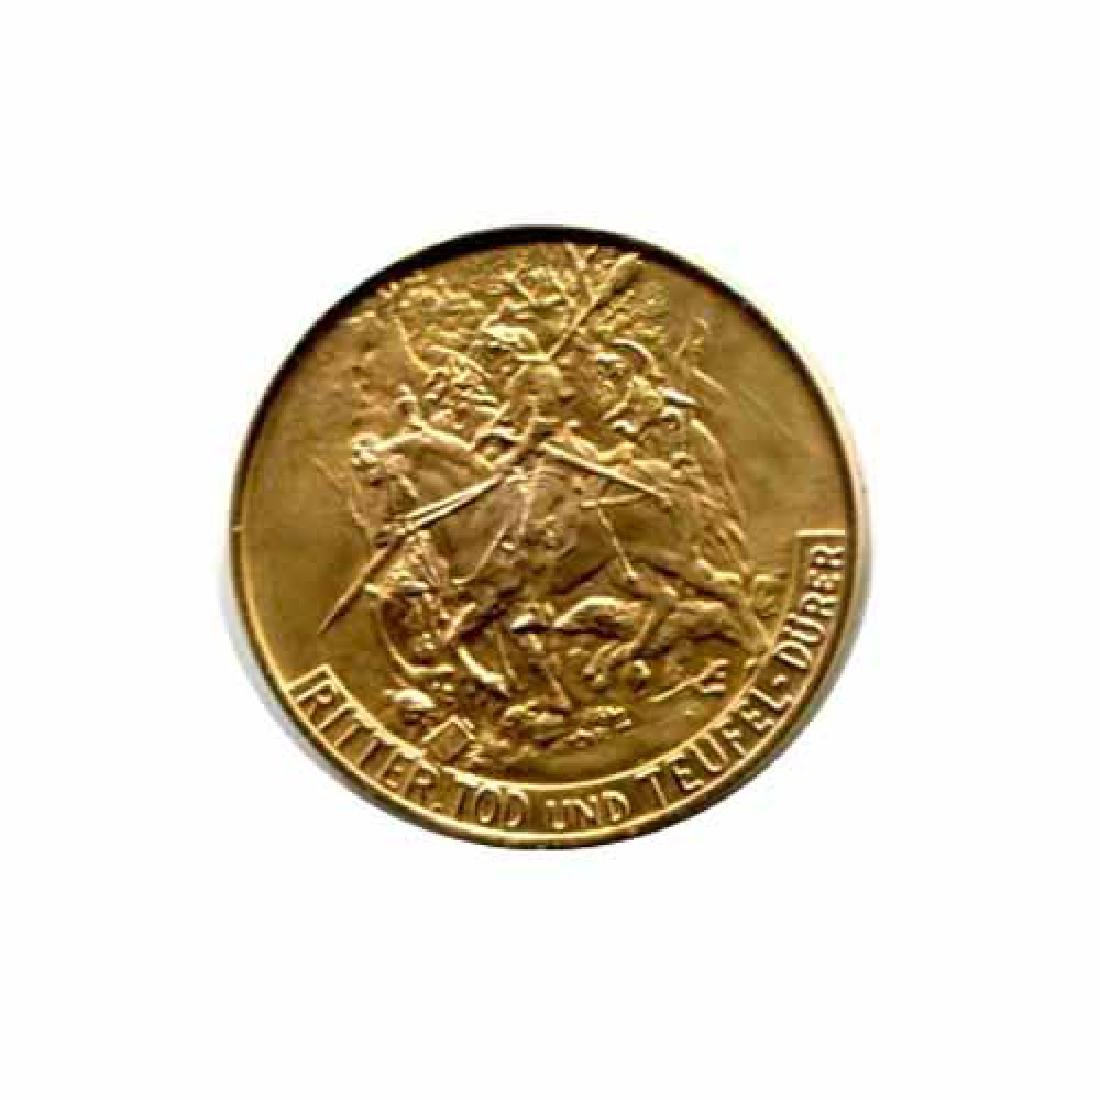 Great Works of the Past gold art medal 6.0 g. Knight D